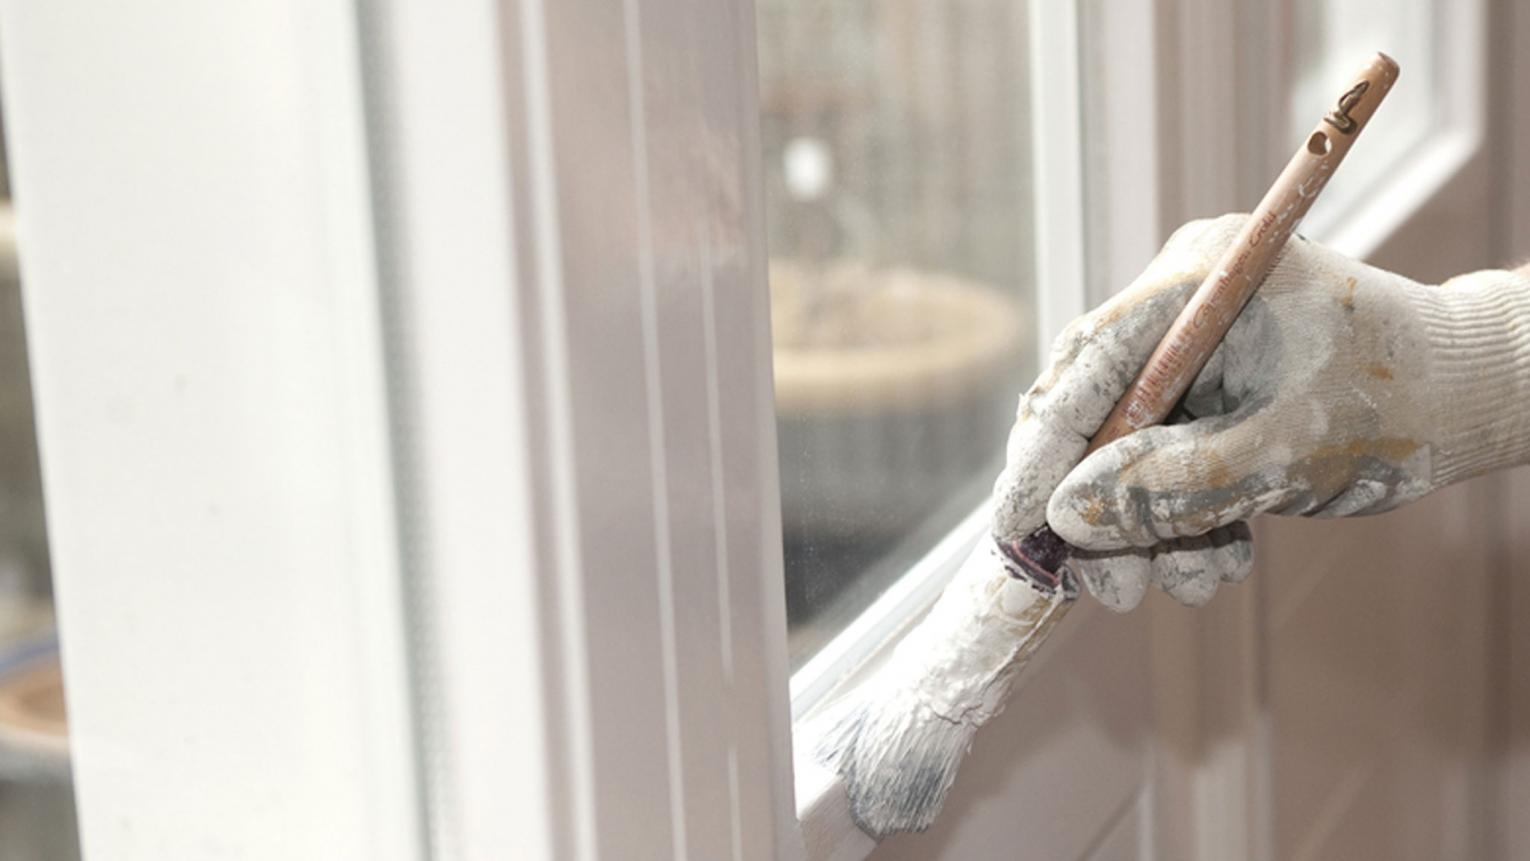 Preparing to paint your window frames? Read our step-by-step guide to creating a professional-looking finish.